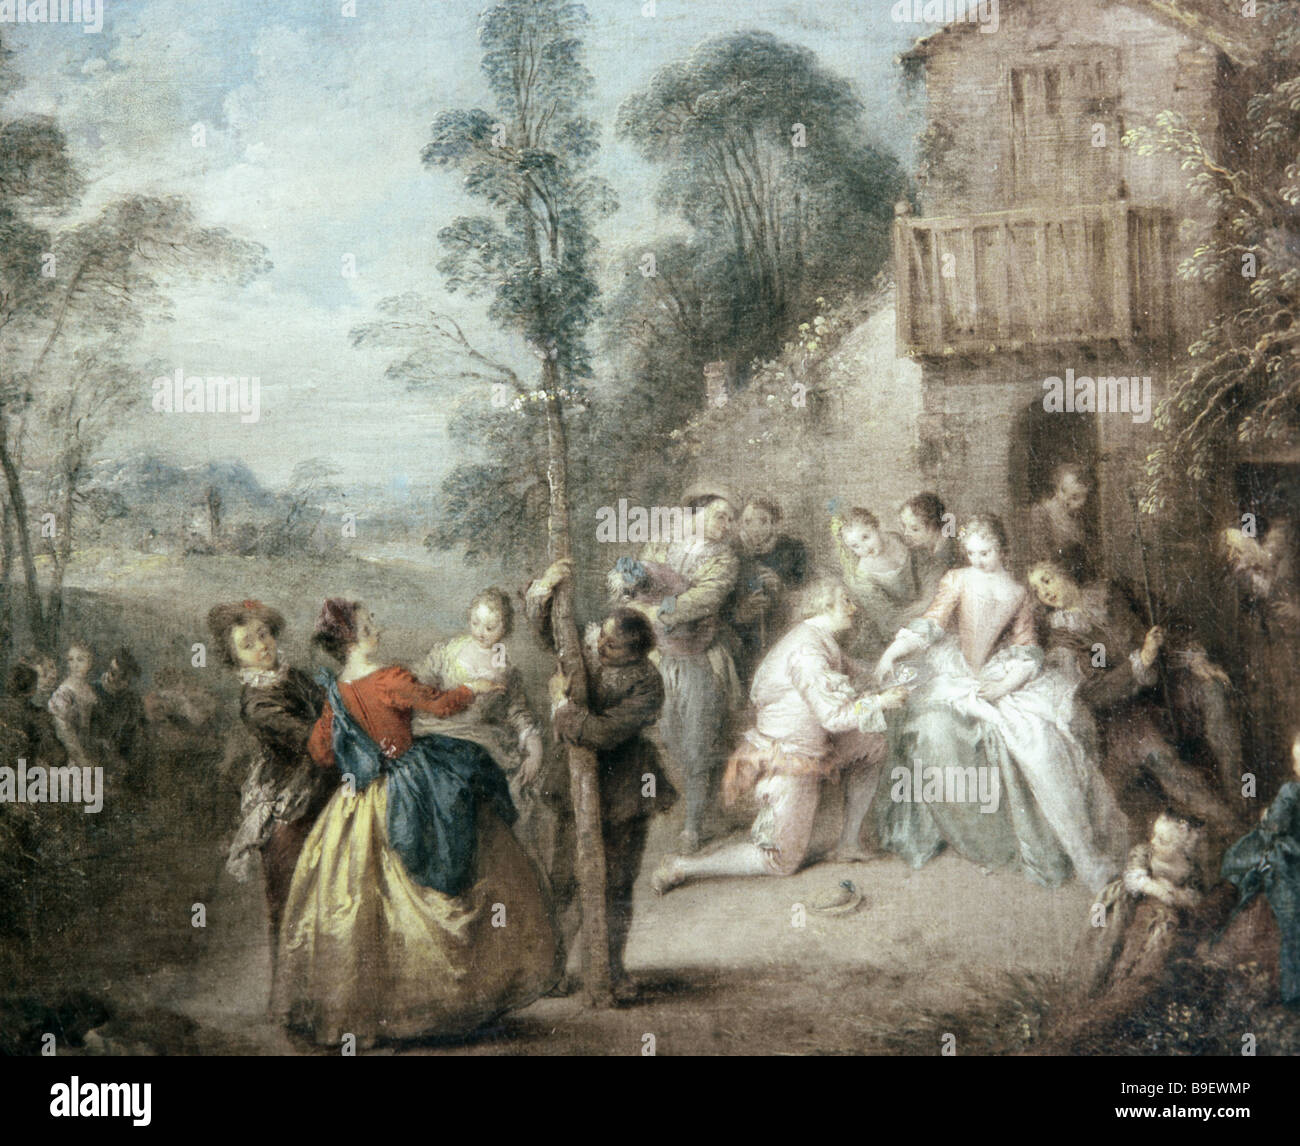 Reproduction of Jean Baptiste Pater s 1695 1736 painting May Tree Holiday from collection of Pushkin State Museum - Stock Image